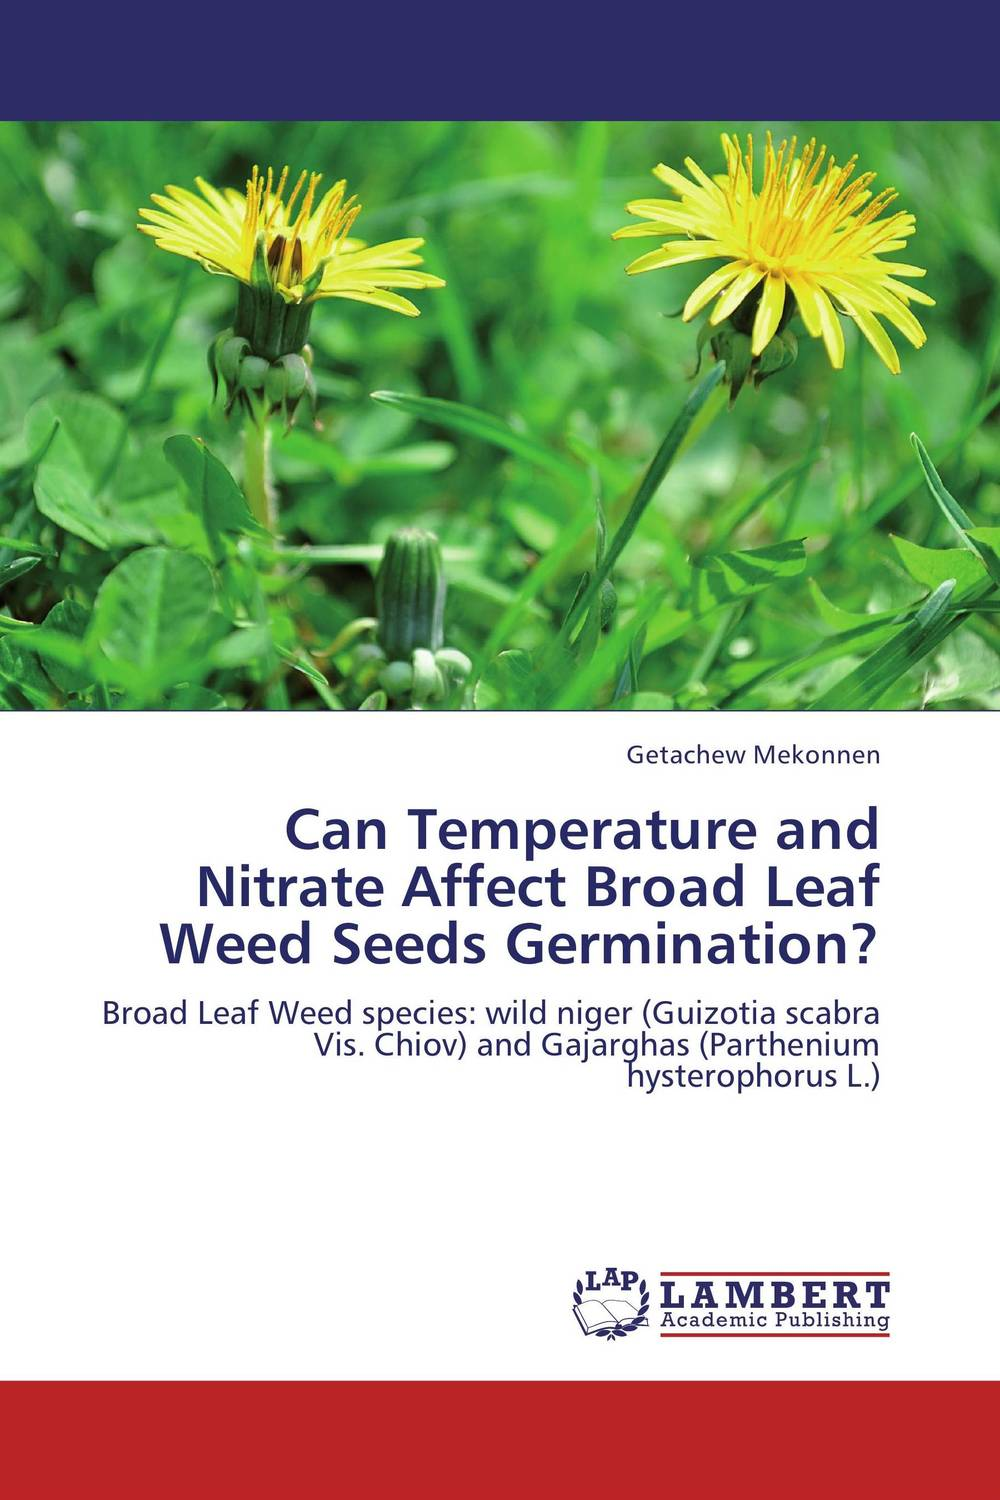 Can Temperature and Nitrate Affect Broad Leaf Weed Seeds Germination? seed dormancy and germination